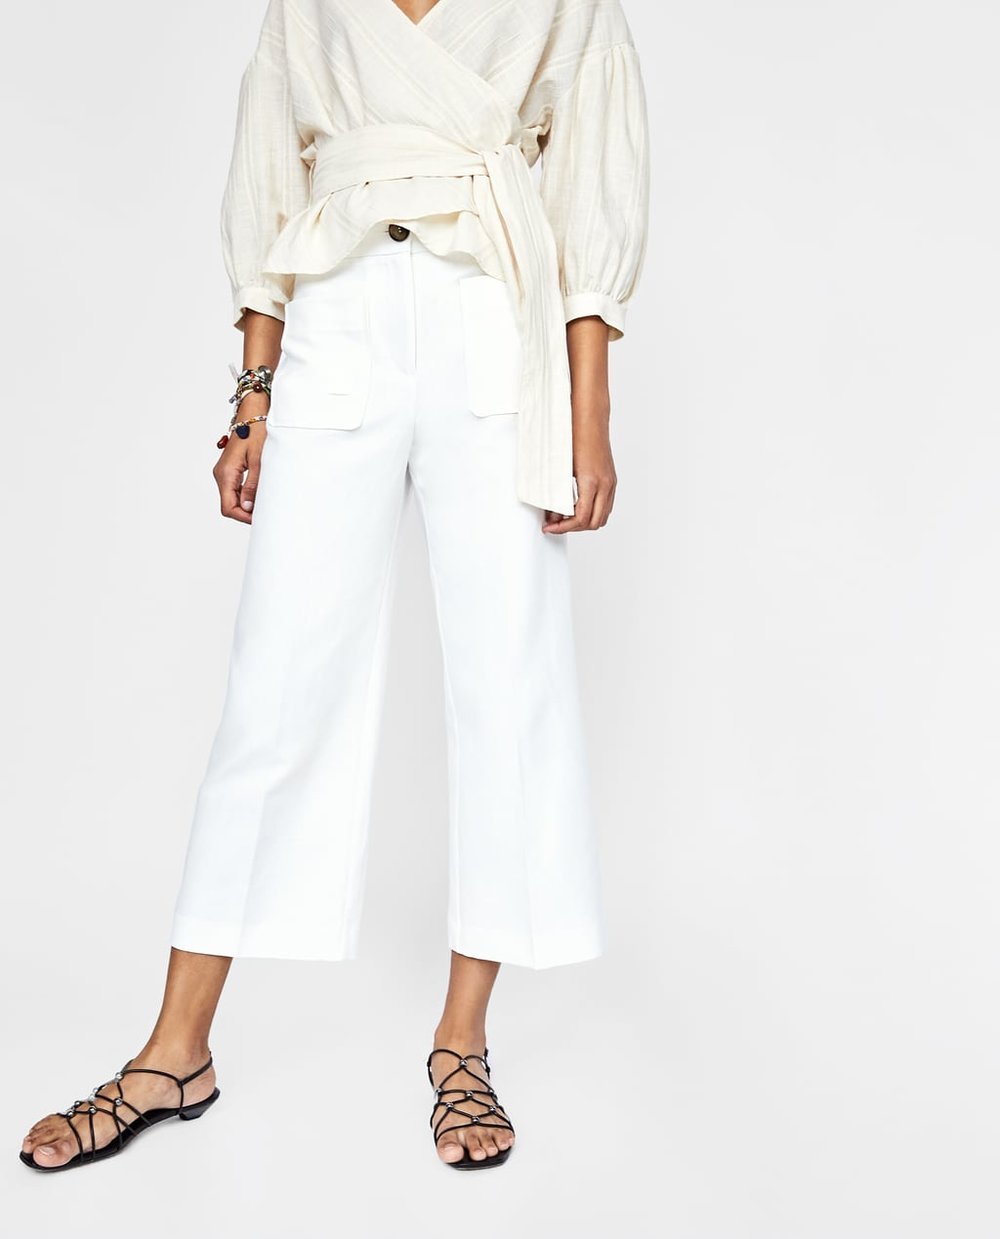 Zara-Trousers-With-Patch.jpg